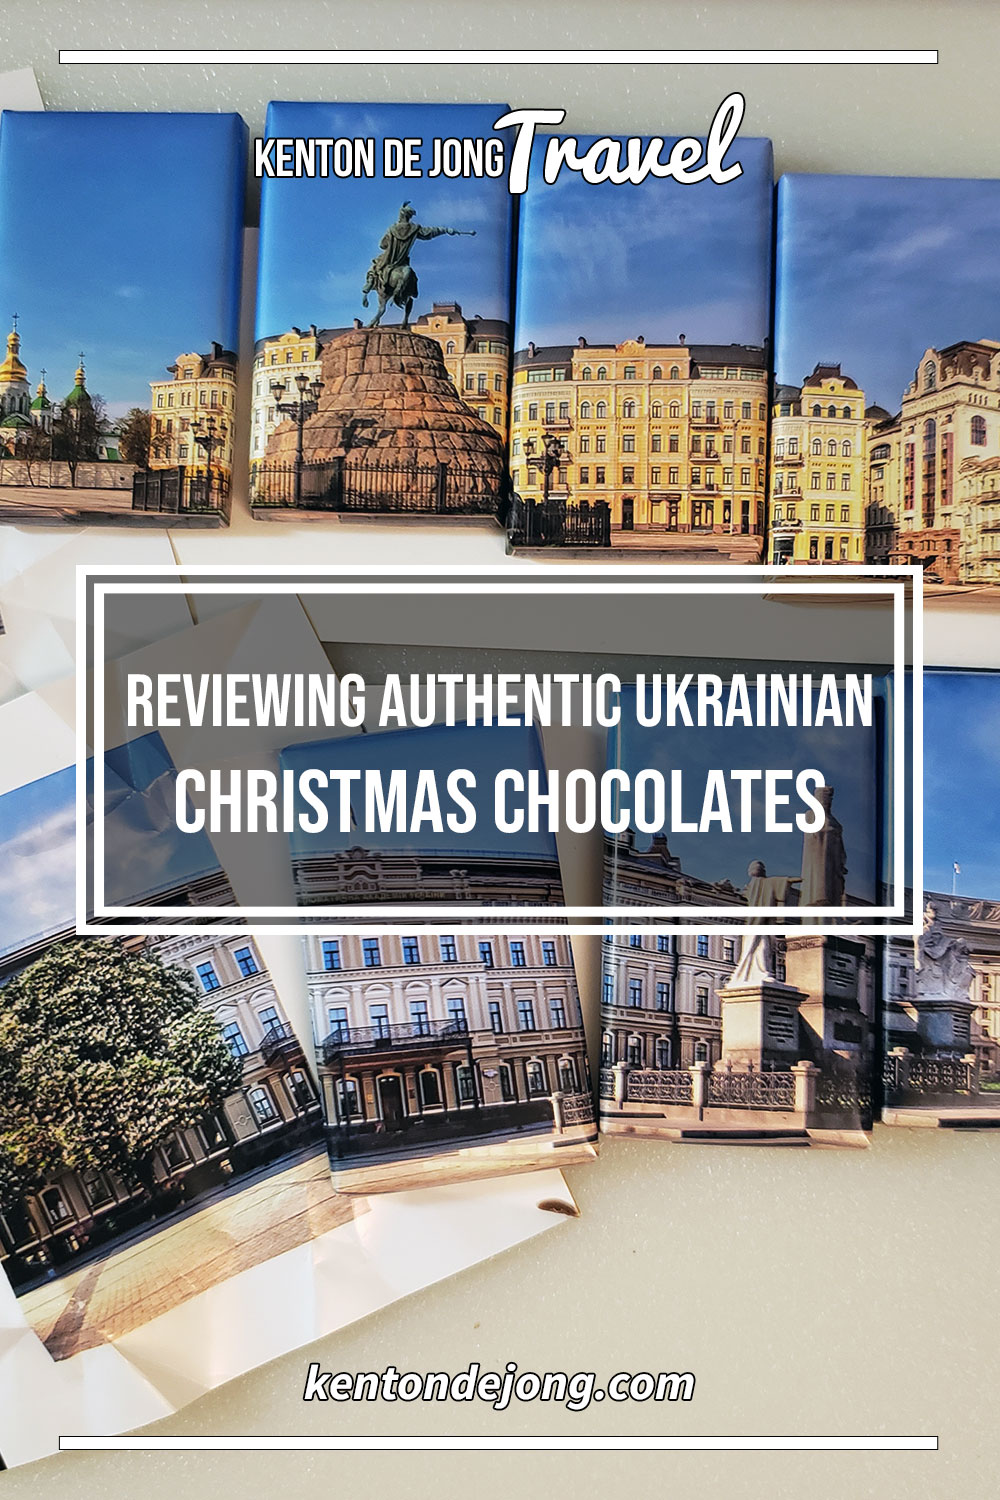 Reviewing Authentic Ukrainian Christmas Chocolates